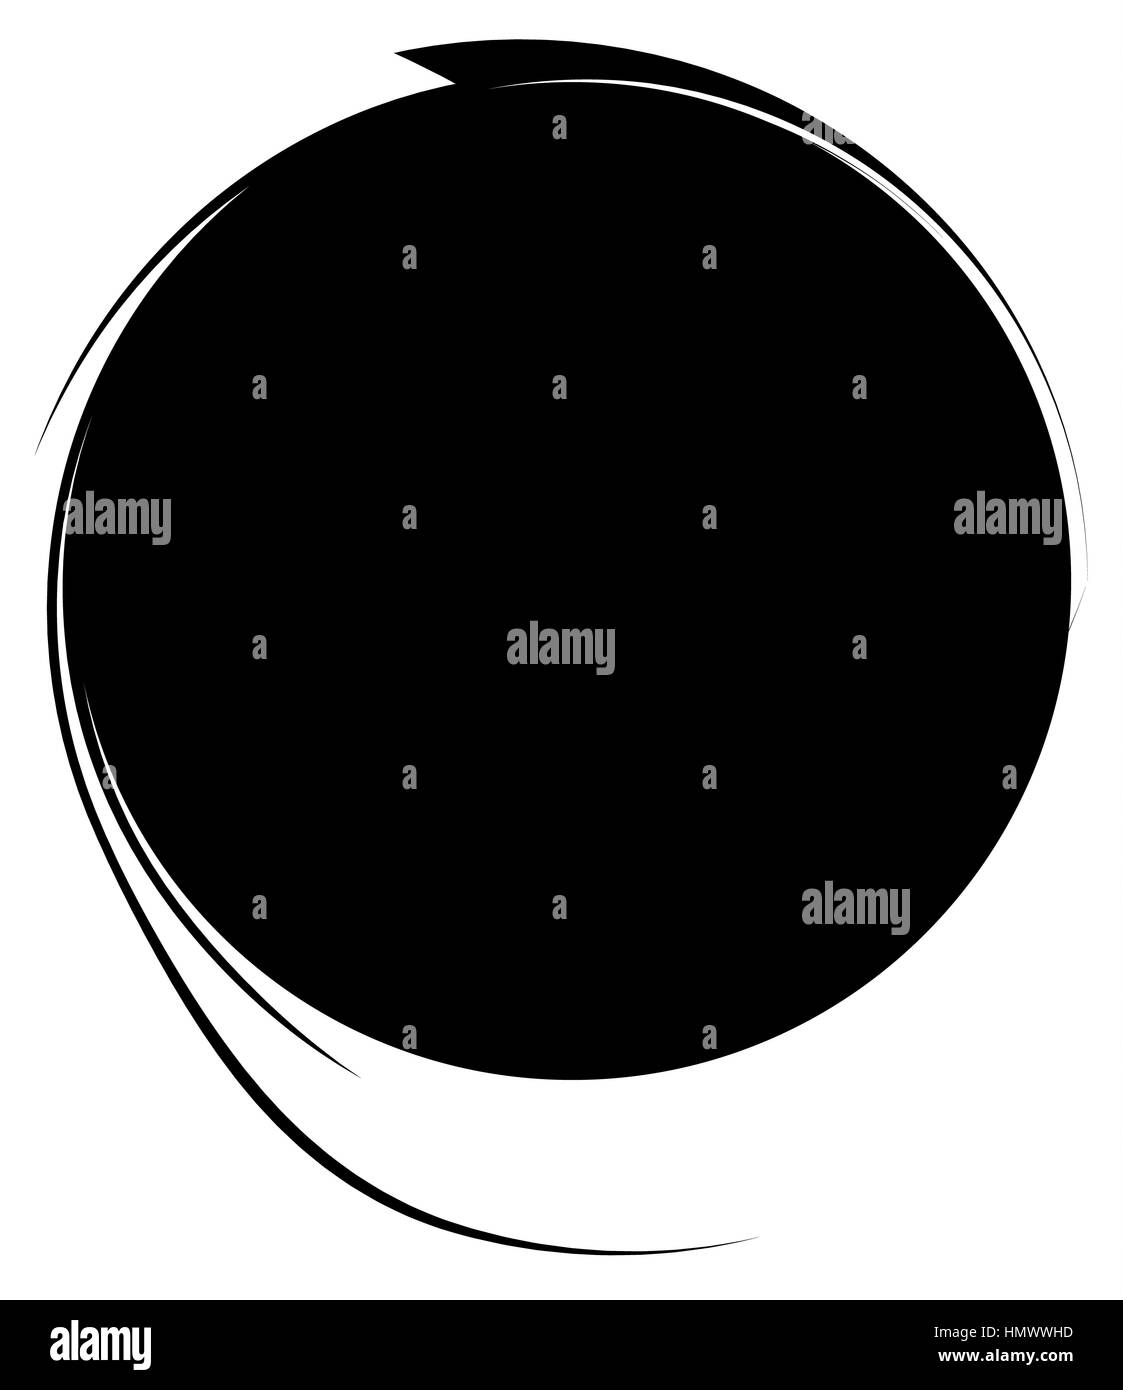 Circle with dynamic swoosh line frame. Monochrome circular element - Stock Image